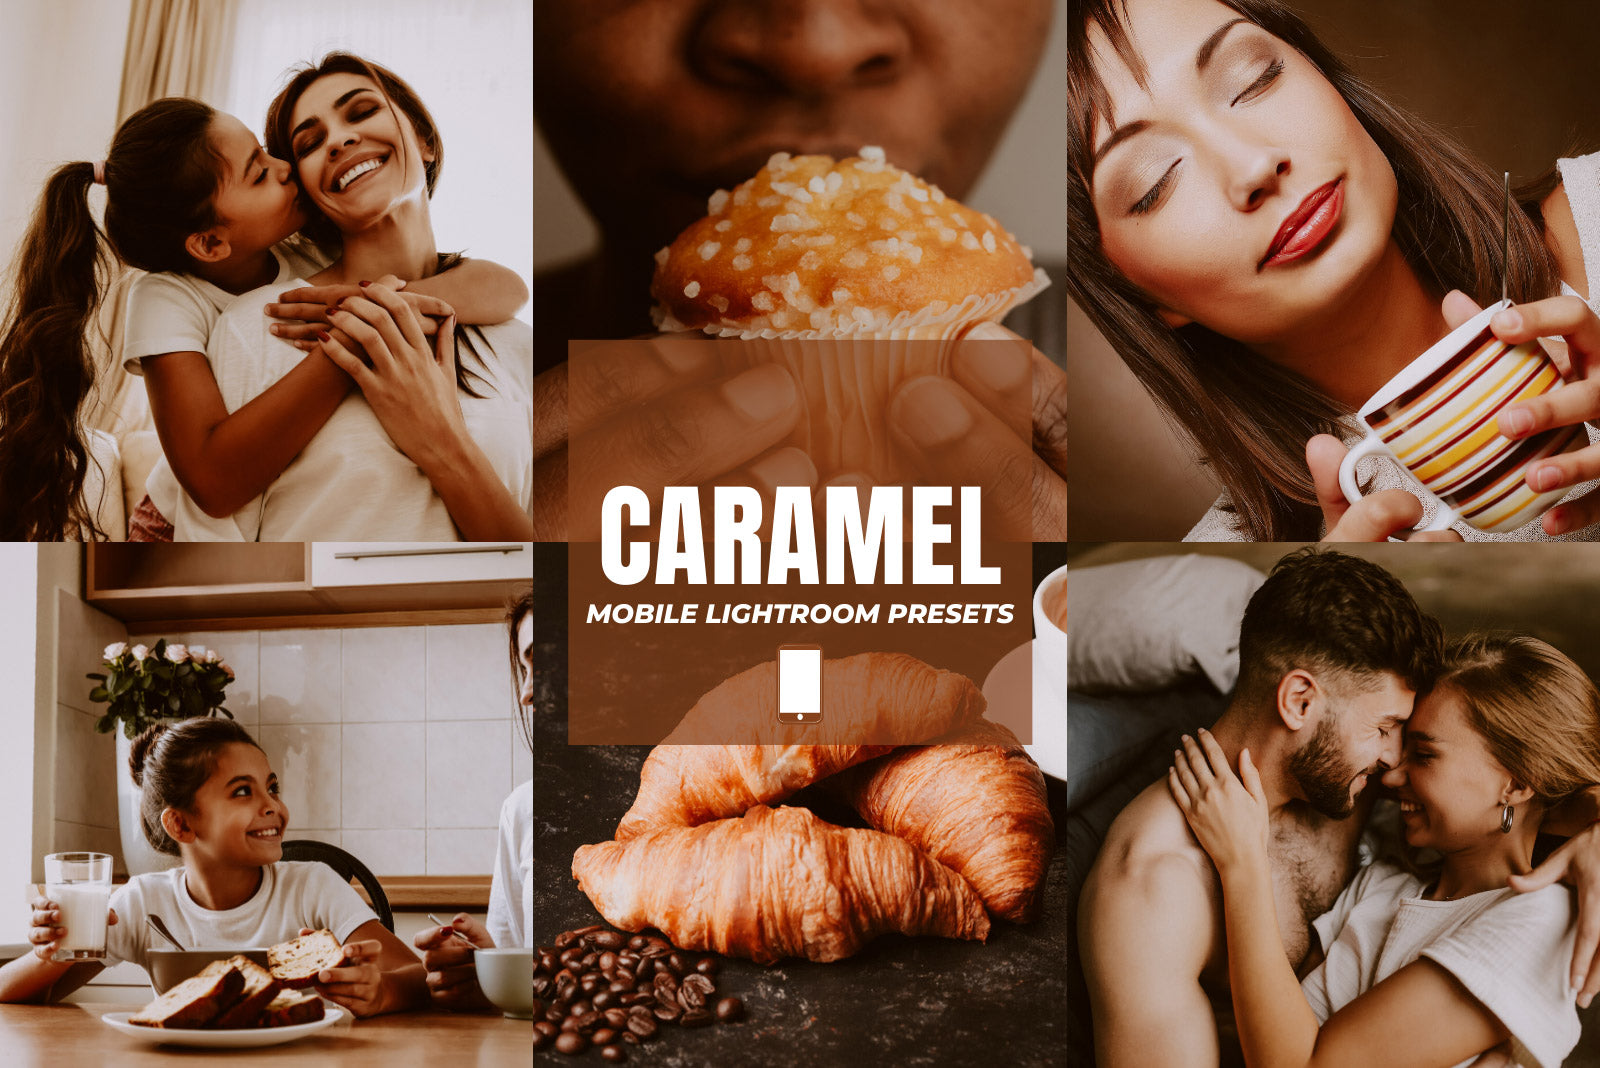 CARAMEL MOBILE LIGHTROOM PRESETS by The Viral Presets